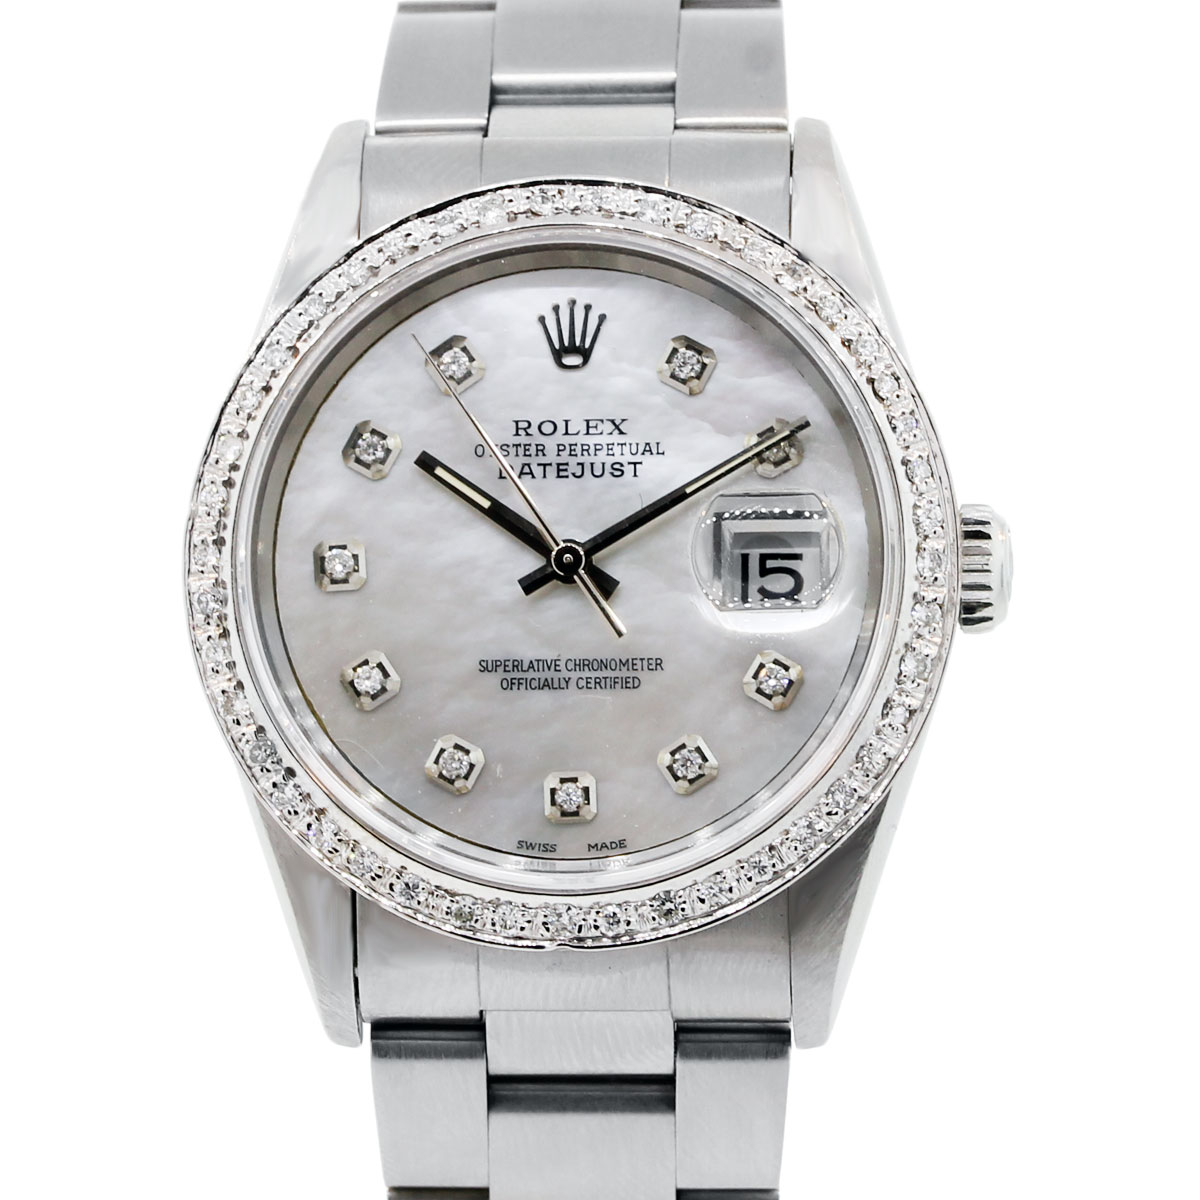 You are viewing this Rolex Datejust 16234 Mother of Pearl Diamond Watch!